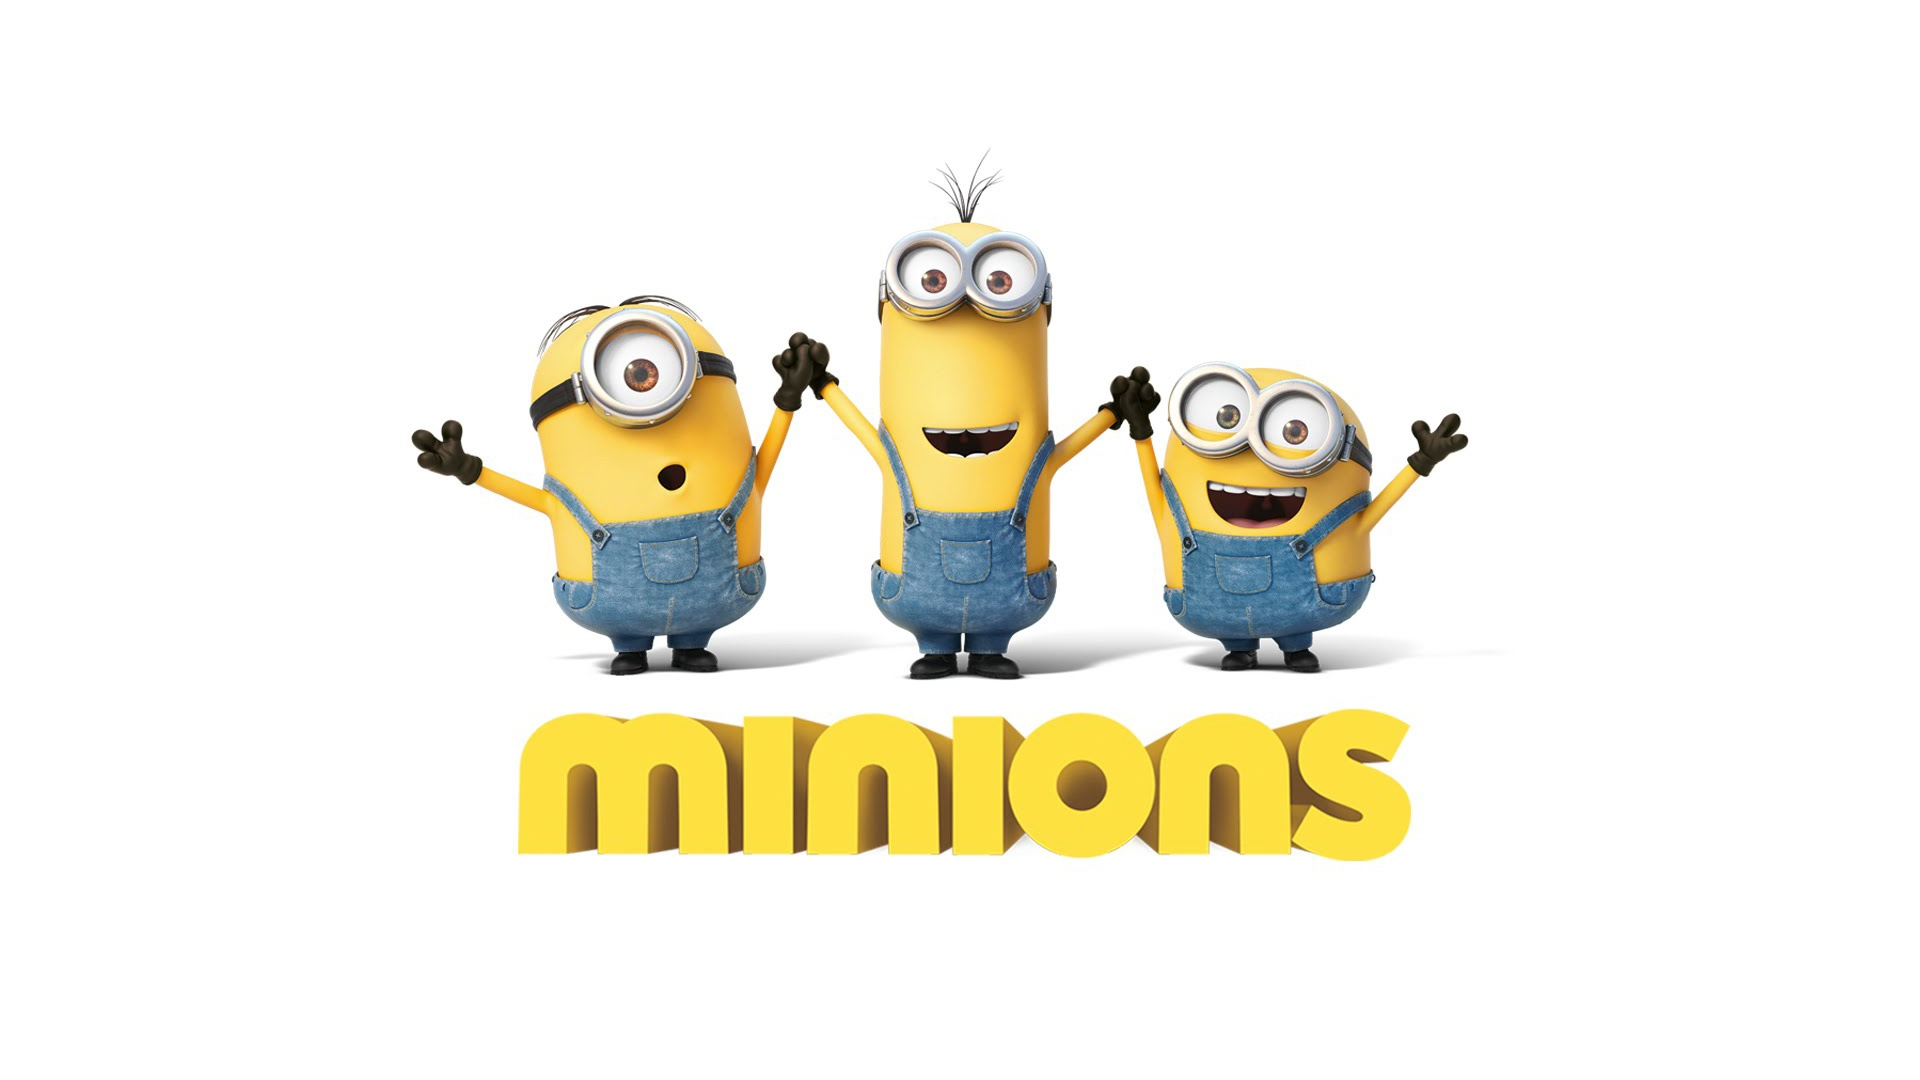 best-ideas-about-Minion-on-Pinterest-Cute-minions-wallpaper-wpc900183